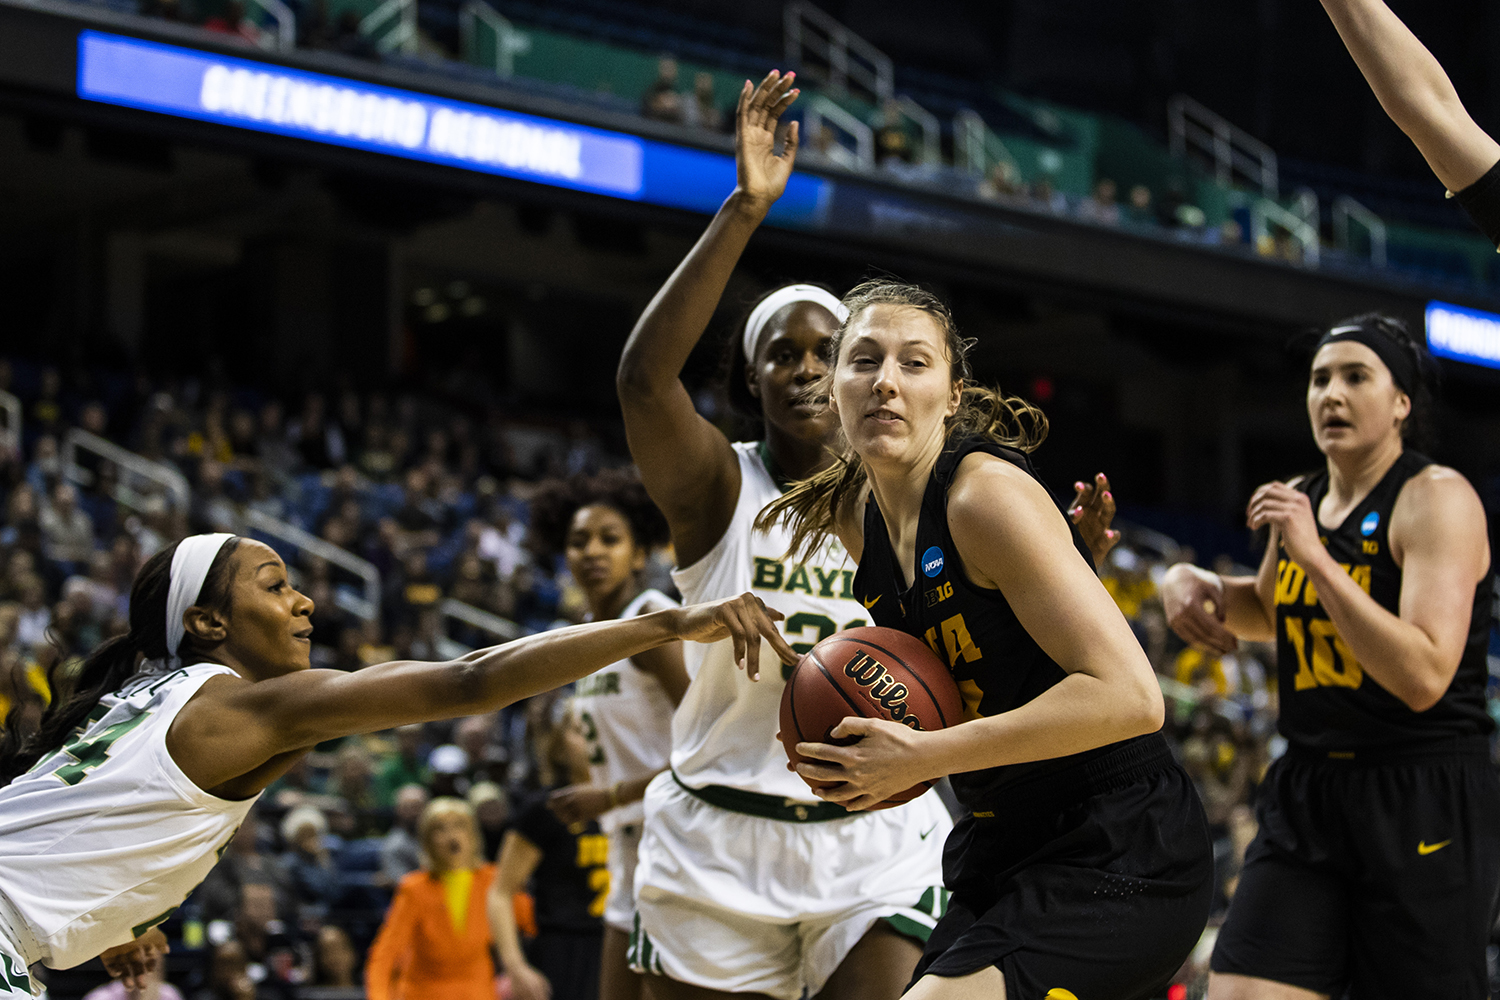 Iowa+forward+Amanda+Ollinger+keeps+the+ball+away+from+Baylor+guard+Chloe+Jackson+during+the+NCAA+Elite+8+game+against+Baylor+at+the+Greensboro+Coliseum+Complex+on+Monday%2C+April+1%2C+2019.+The+Bears+defeated+the+Hawkeyes+85-53.